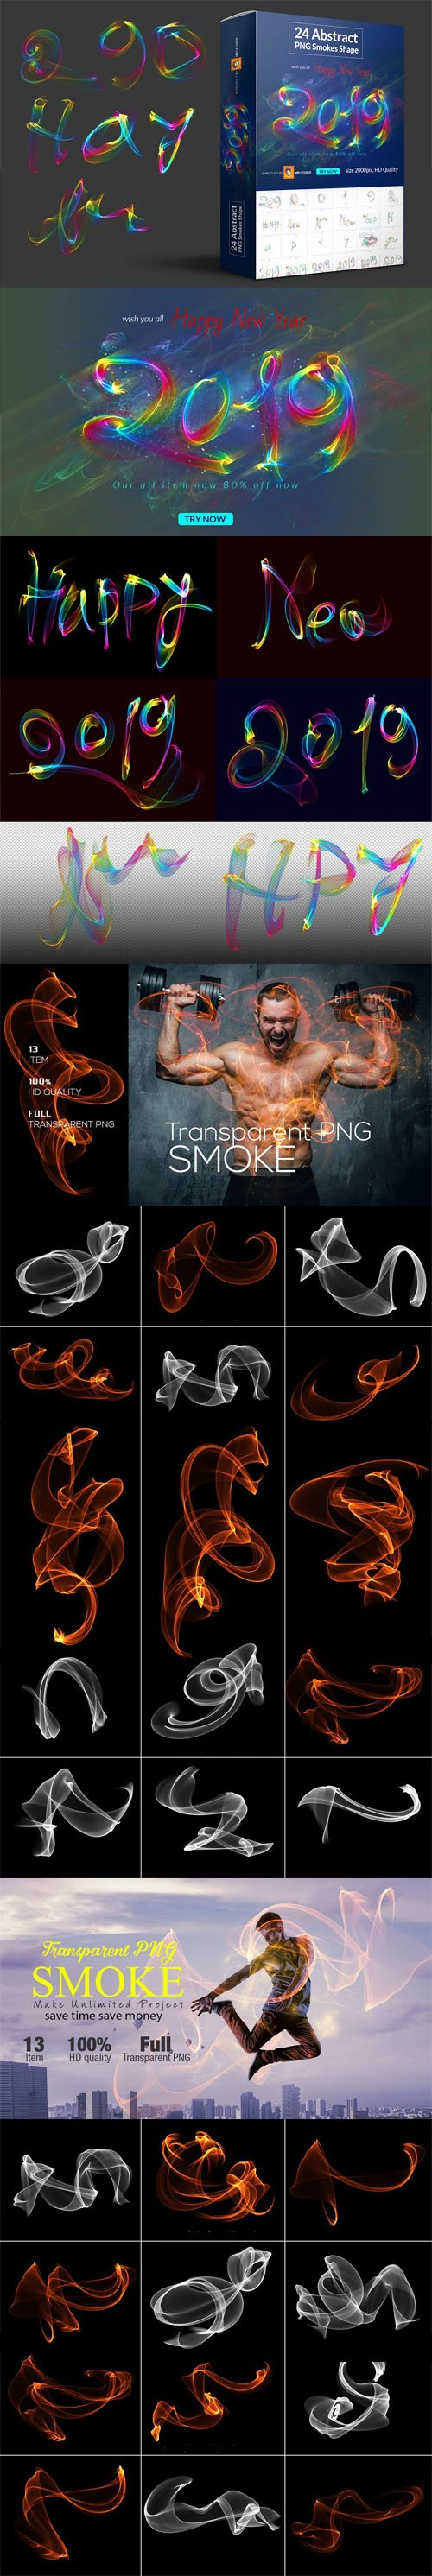 52 Abstract Smokes Transparent PNG